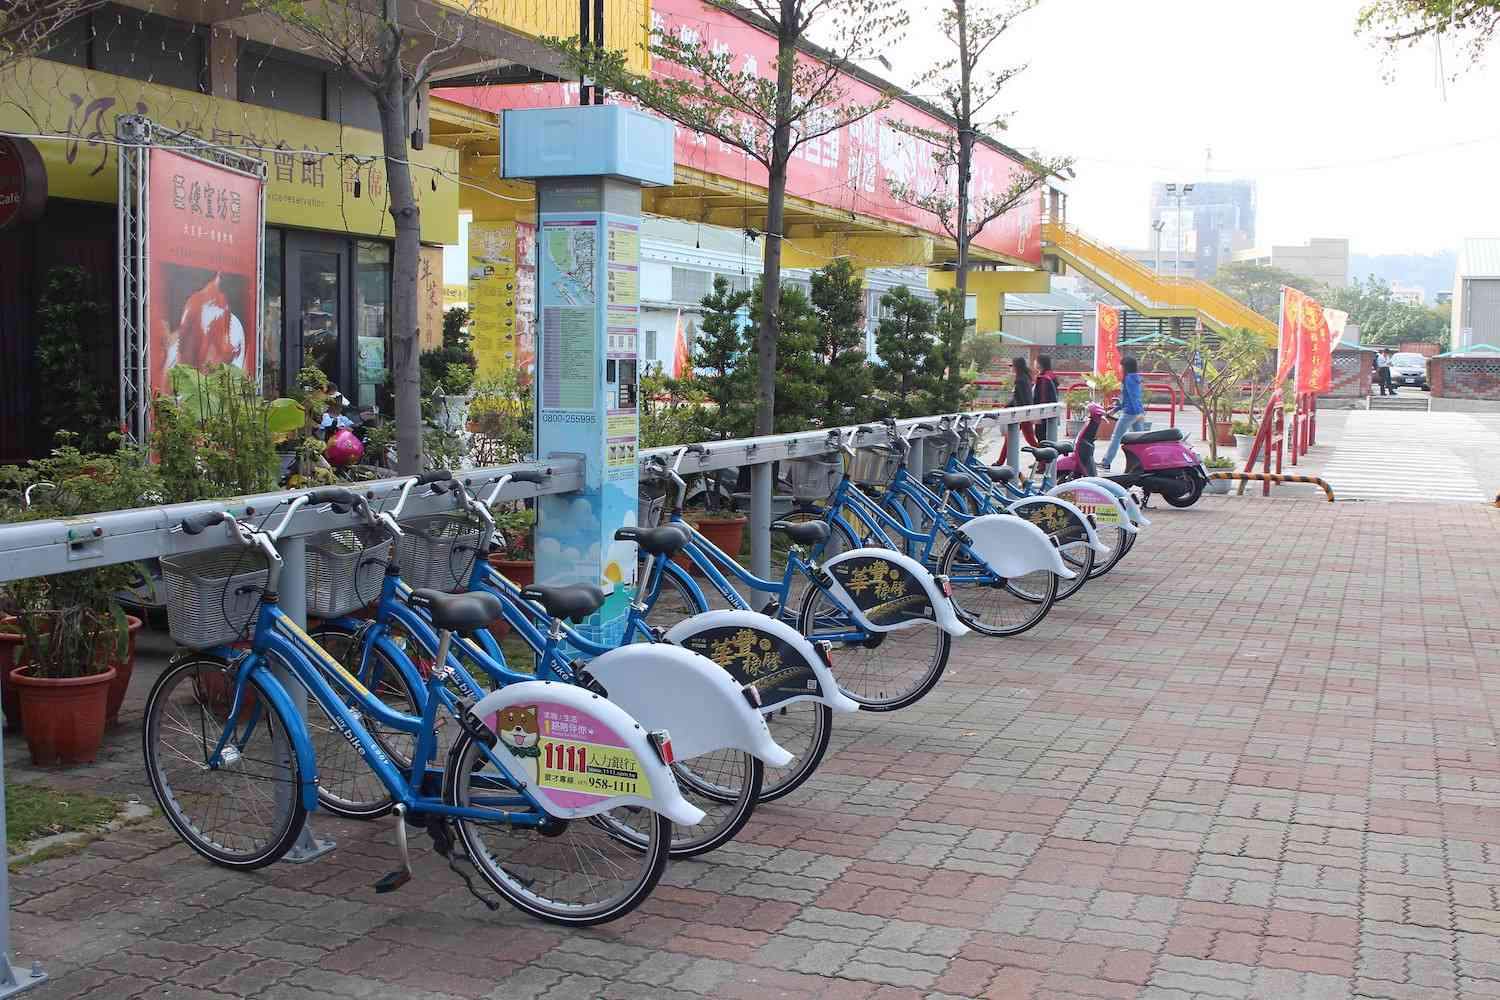 A row of bikes at a kiosk in Kaohsiung, Taiwan